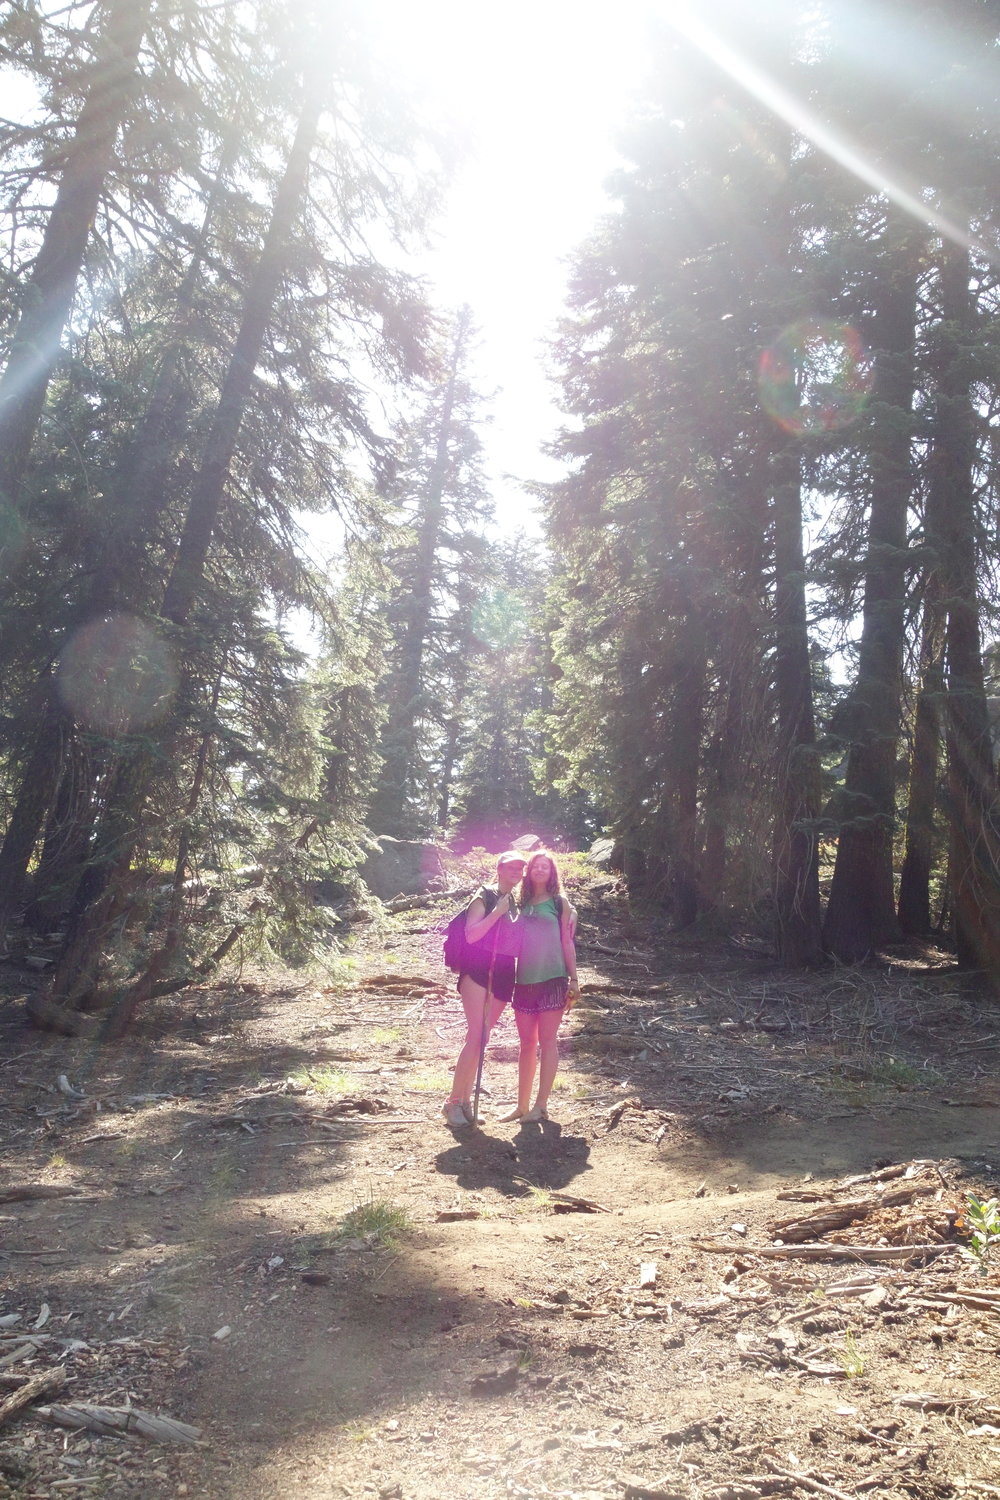 Mt Shasta Spiritual Tours . Mt Shasta Guide  / The Violet Flame